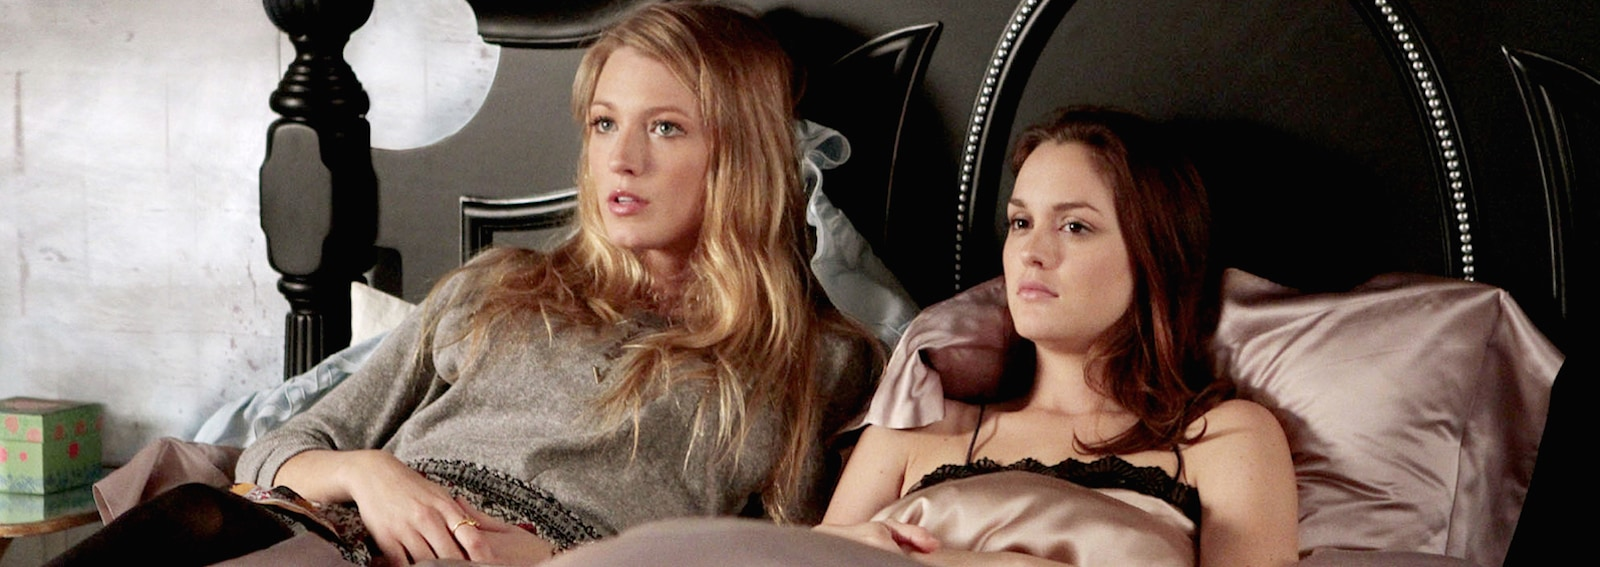 Blake Lively letto